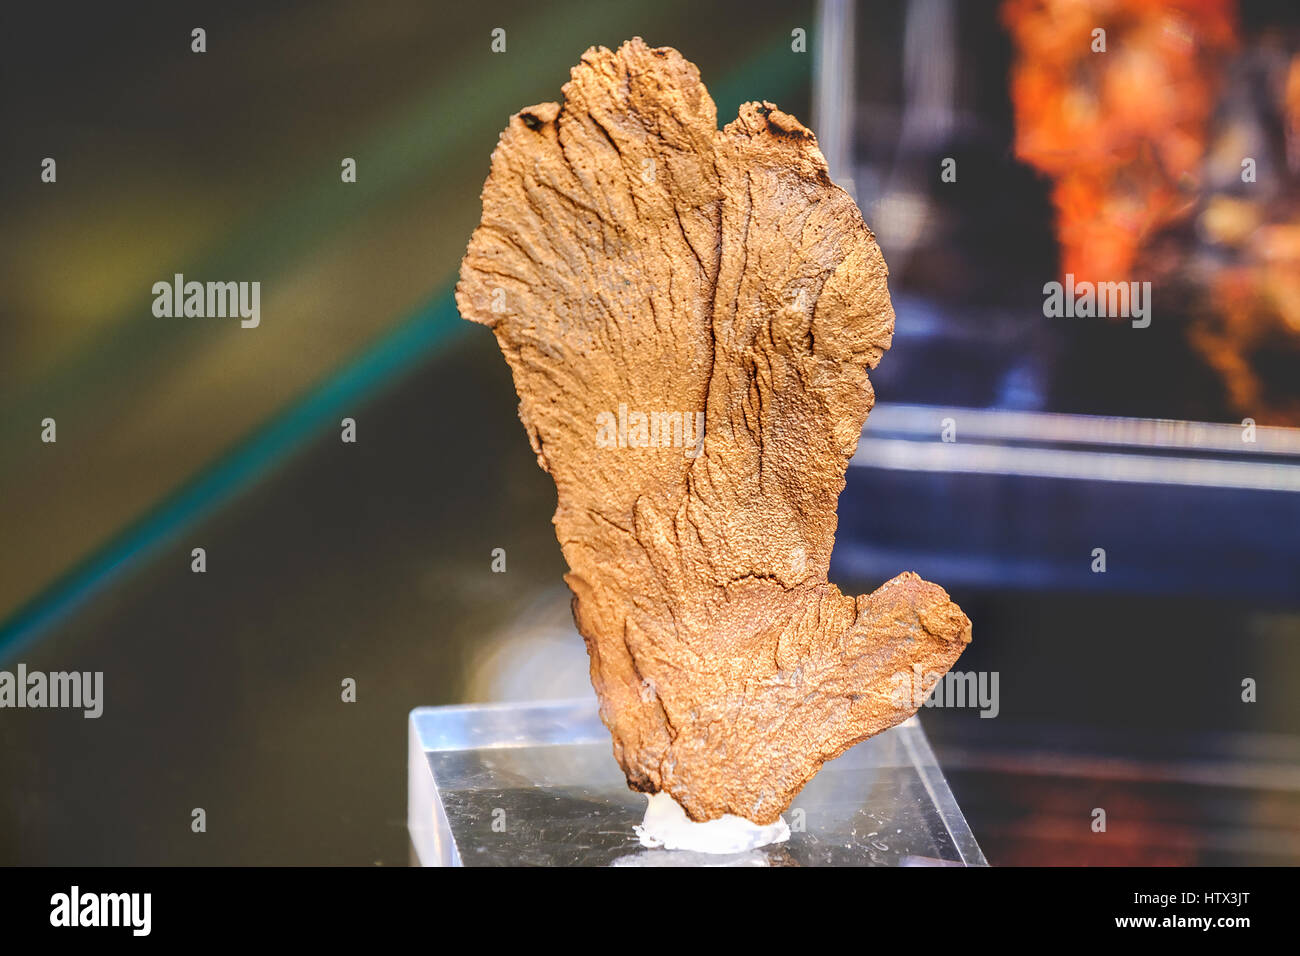 native copper mineral raw materials - Stock Image